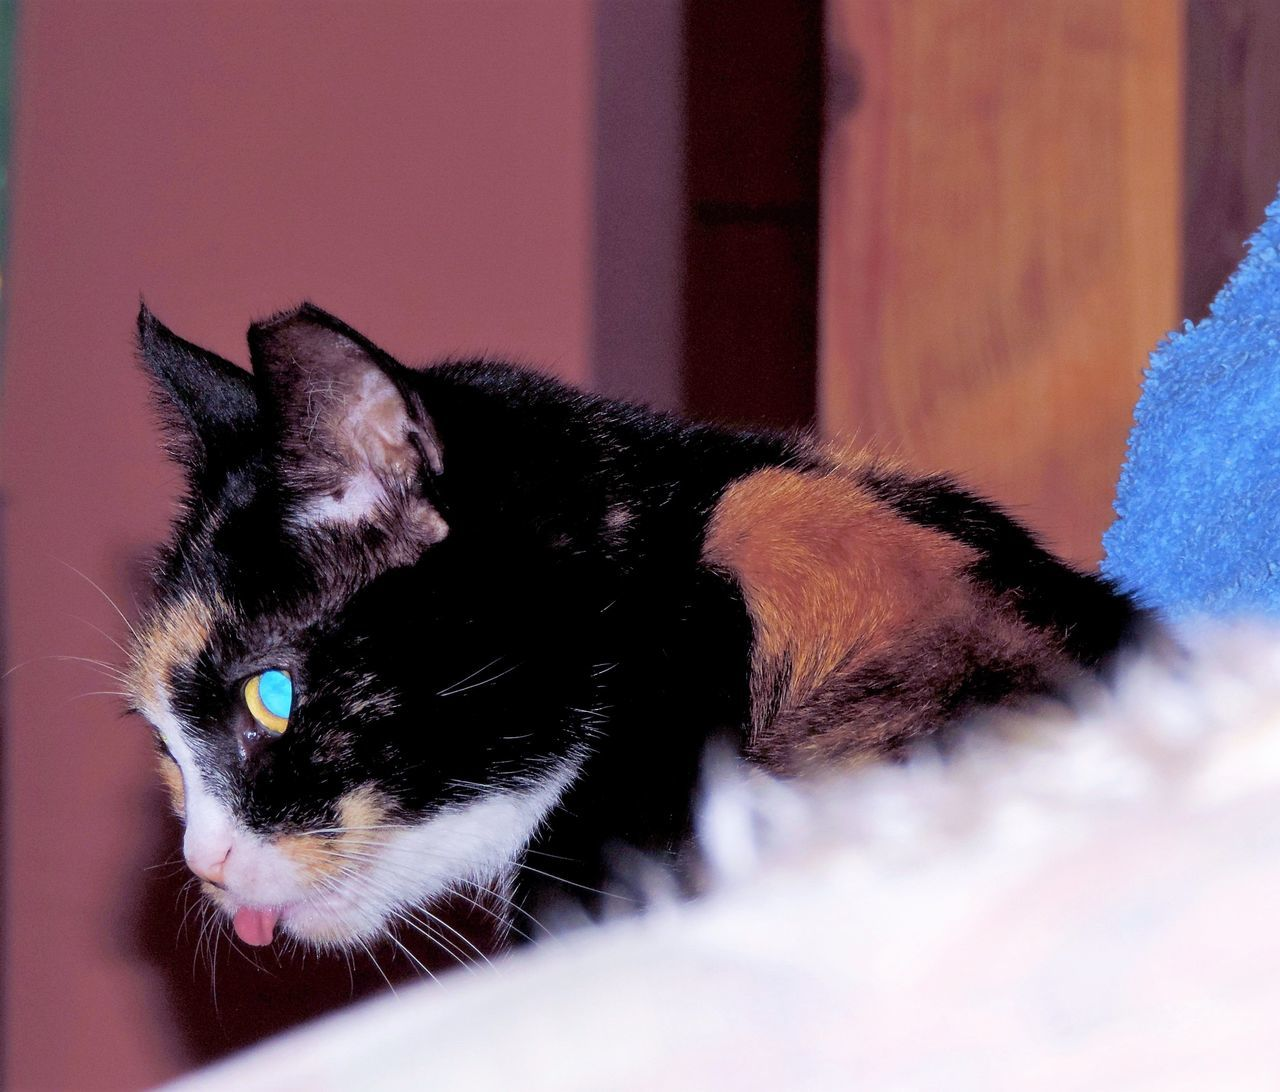 domestic cat, pets, domestic animals, one animal, animal themes, feline, mammal, whisker, no people, indoors, close-up, portrait, day